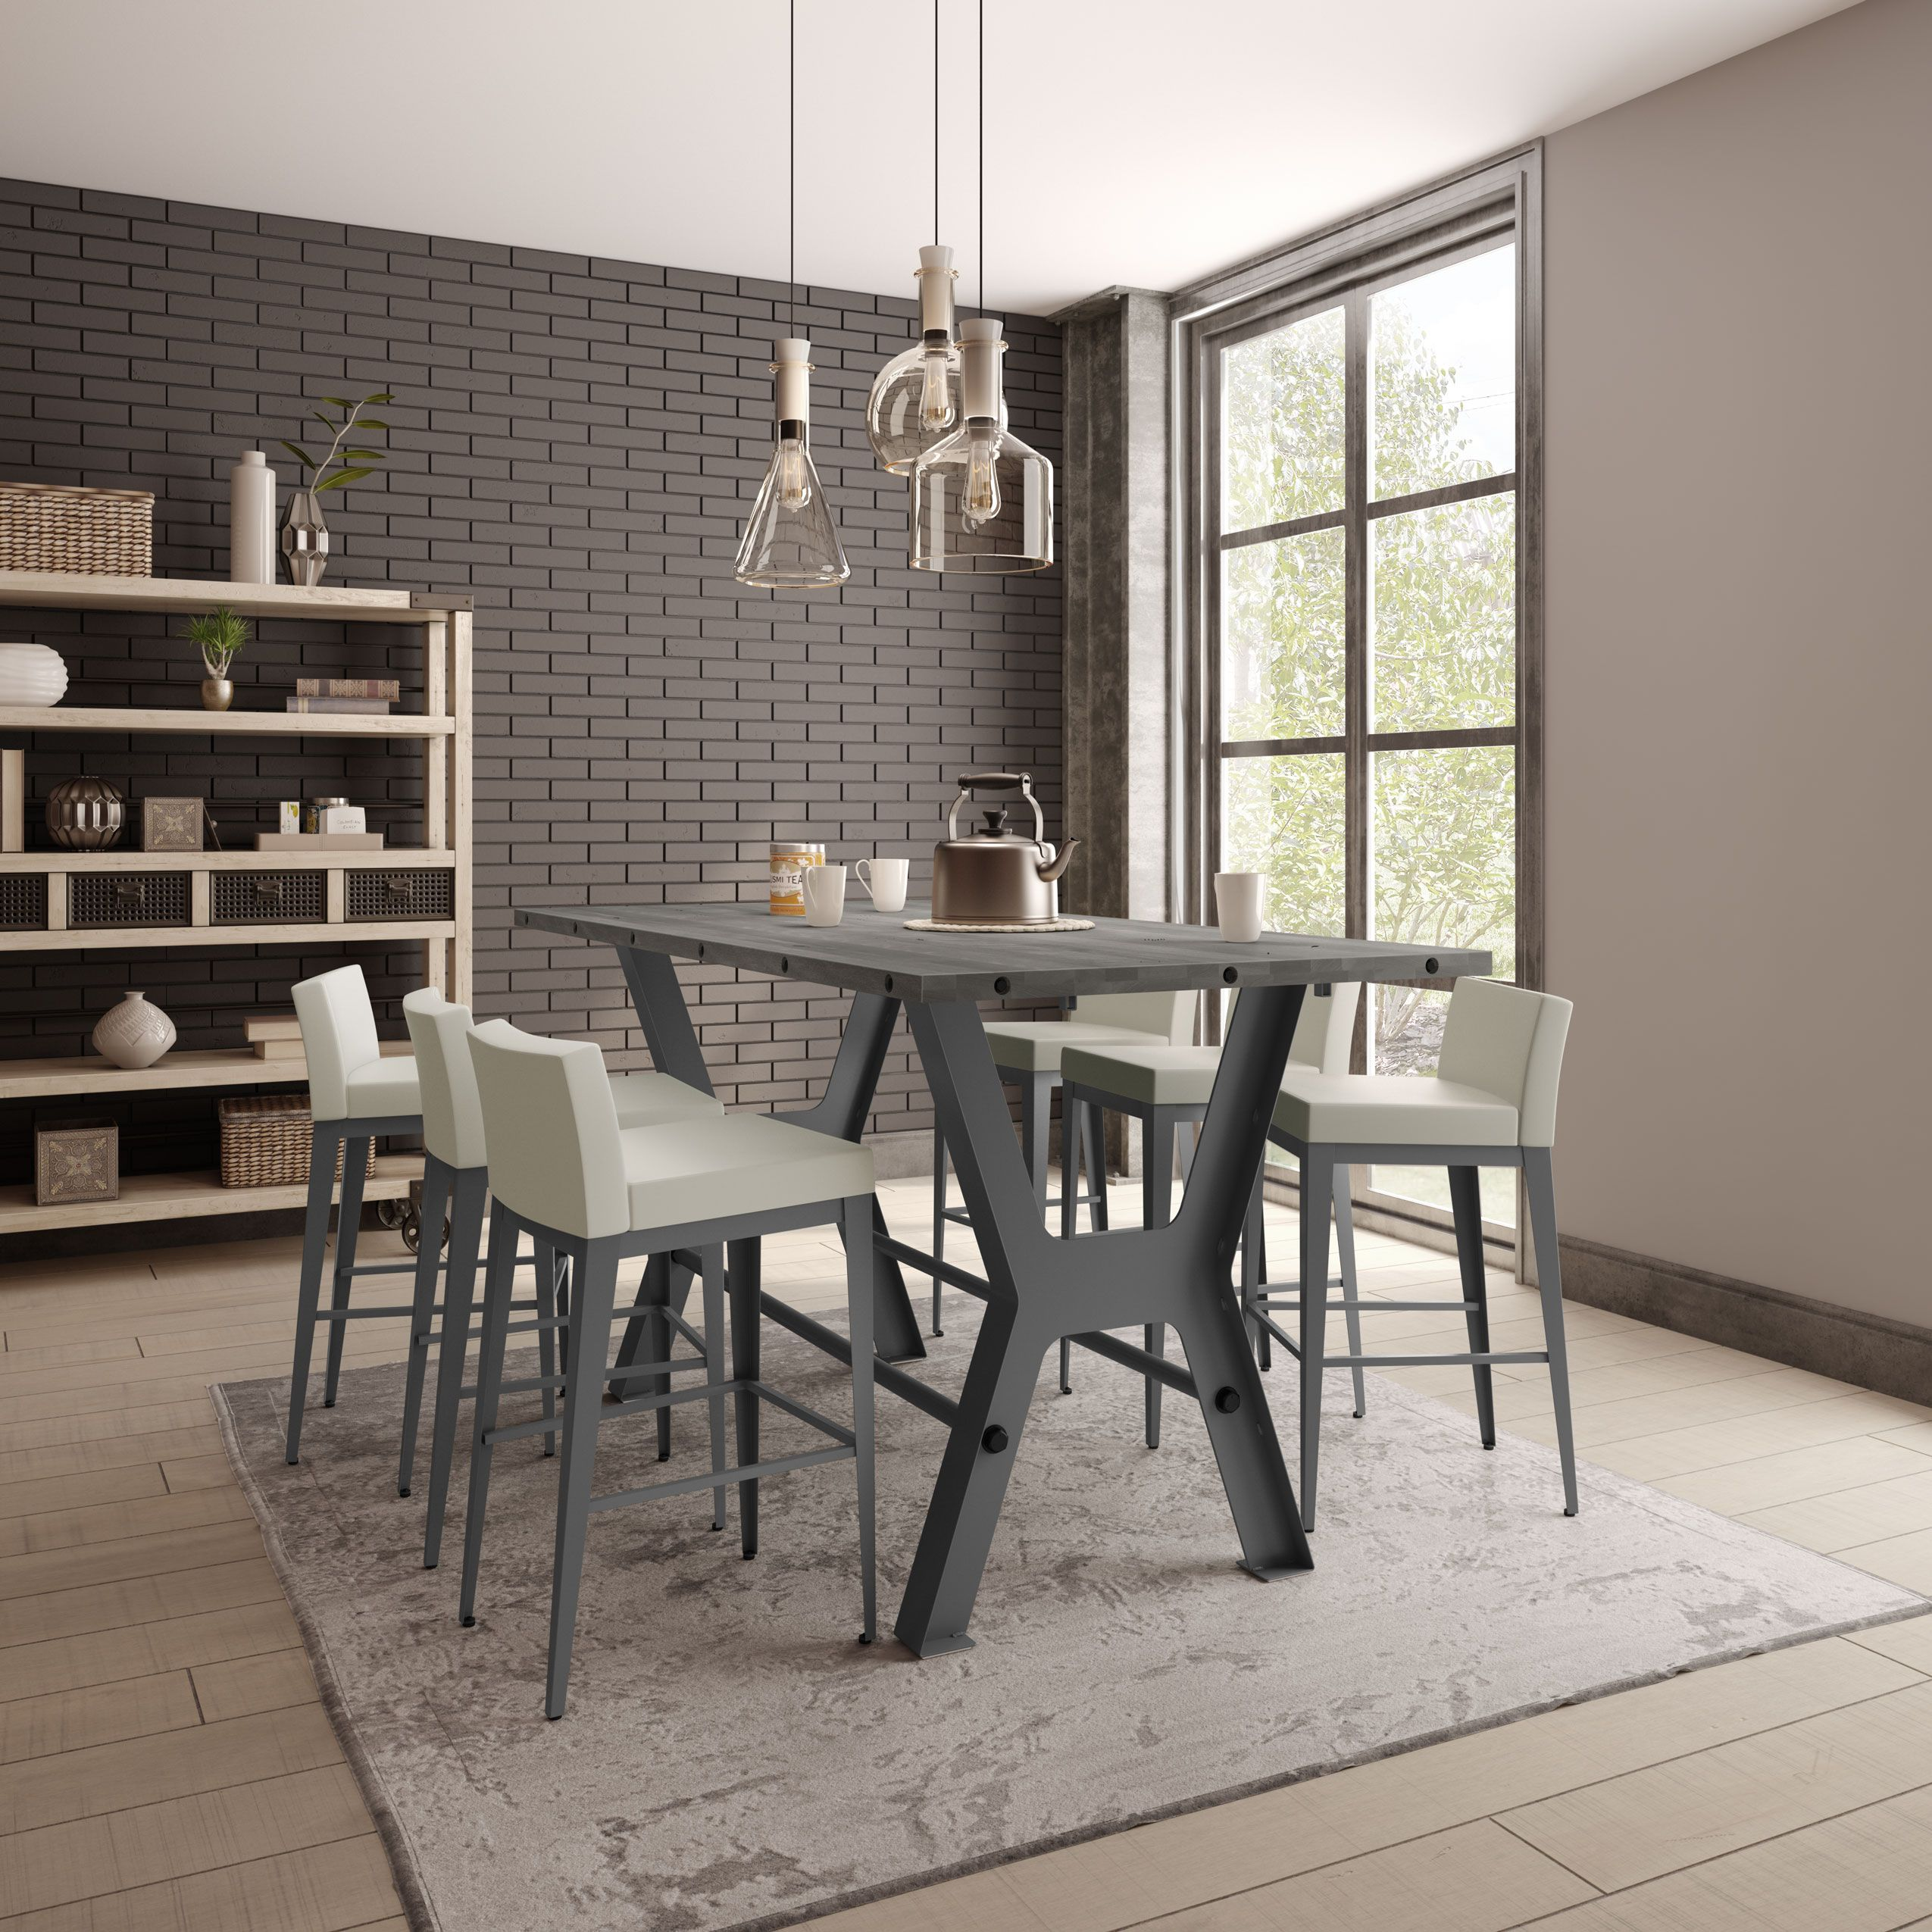 Amisco Parade Pub Table 50565 36 42 Furniture Kitchen Industrial Collection Contemporary Pub Table